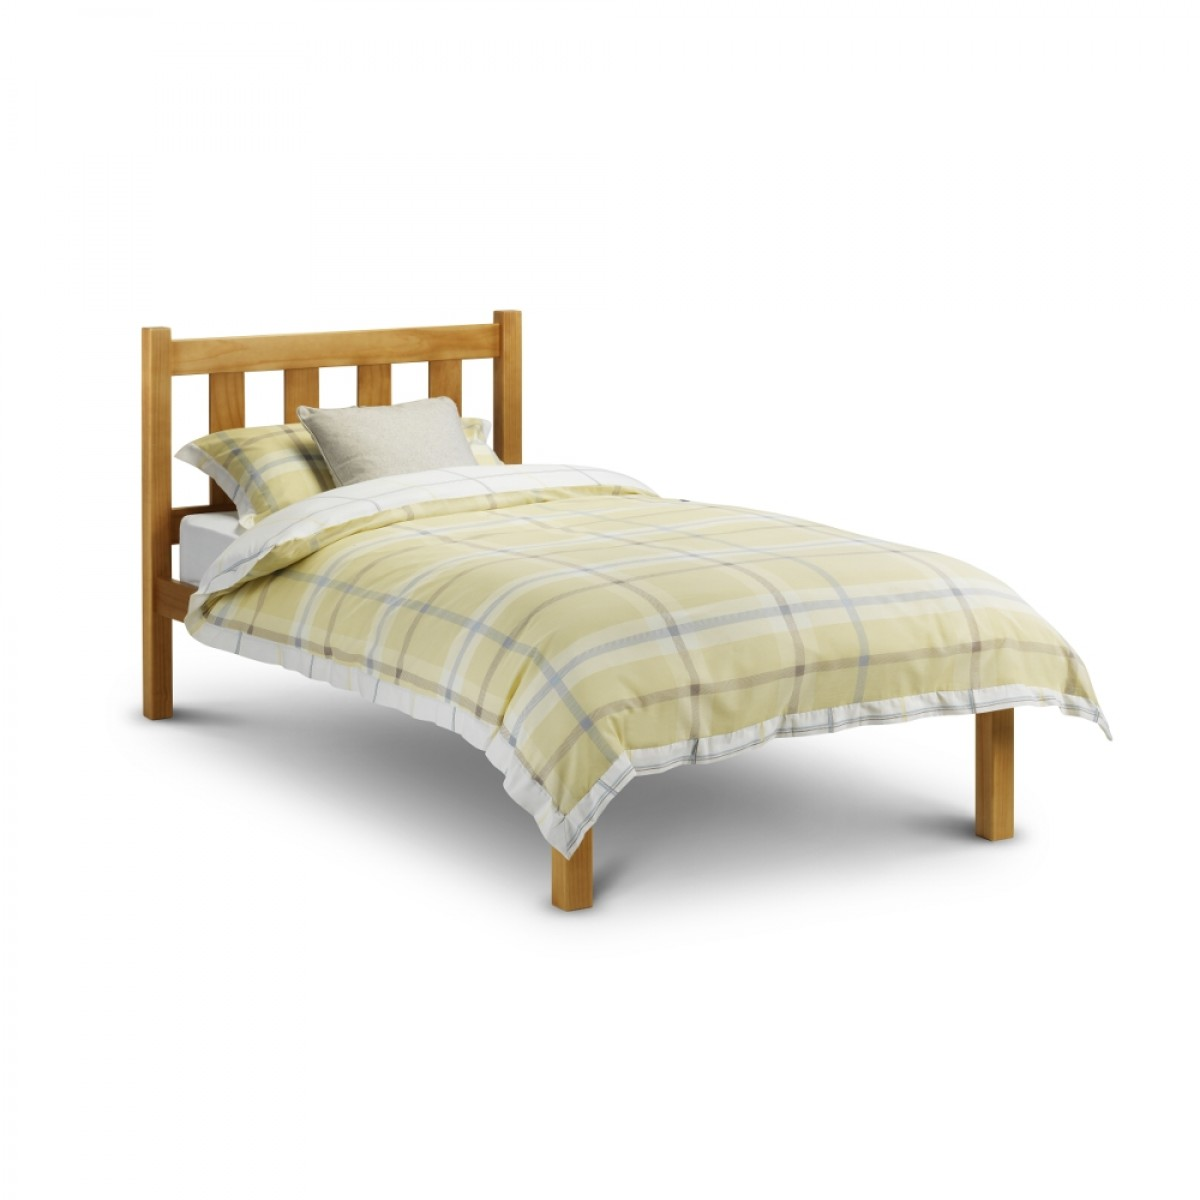 Poppy Antique Solid Pine Wooden Bed